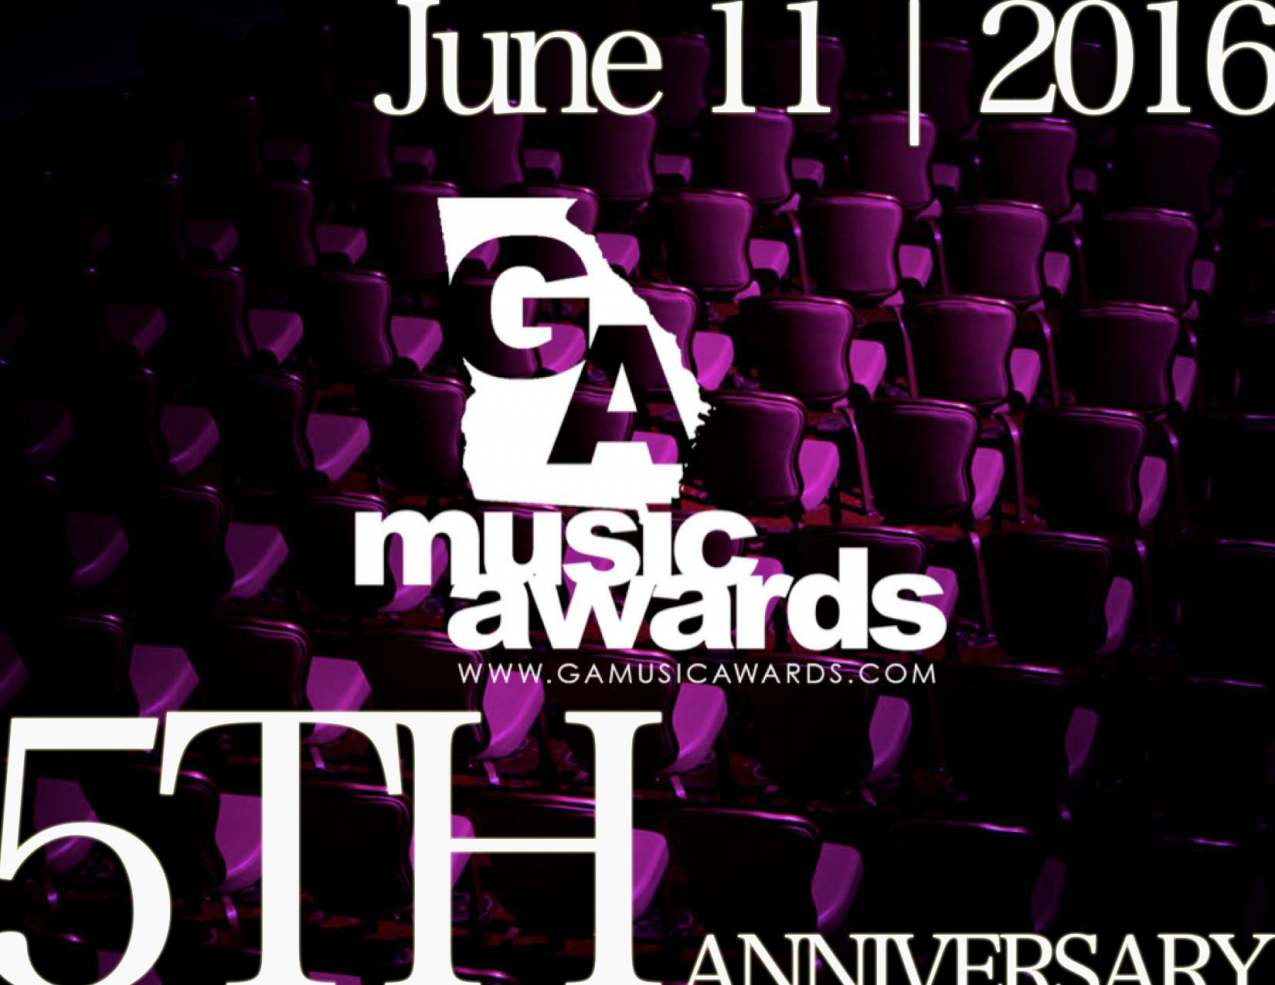 GA Music Awards 5th Anniversary - June 11th